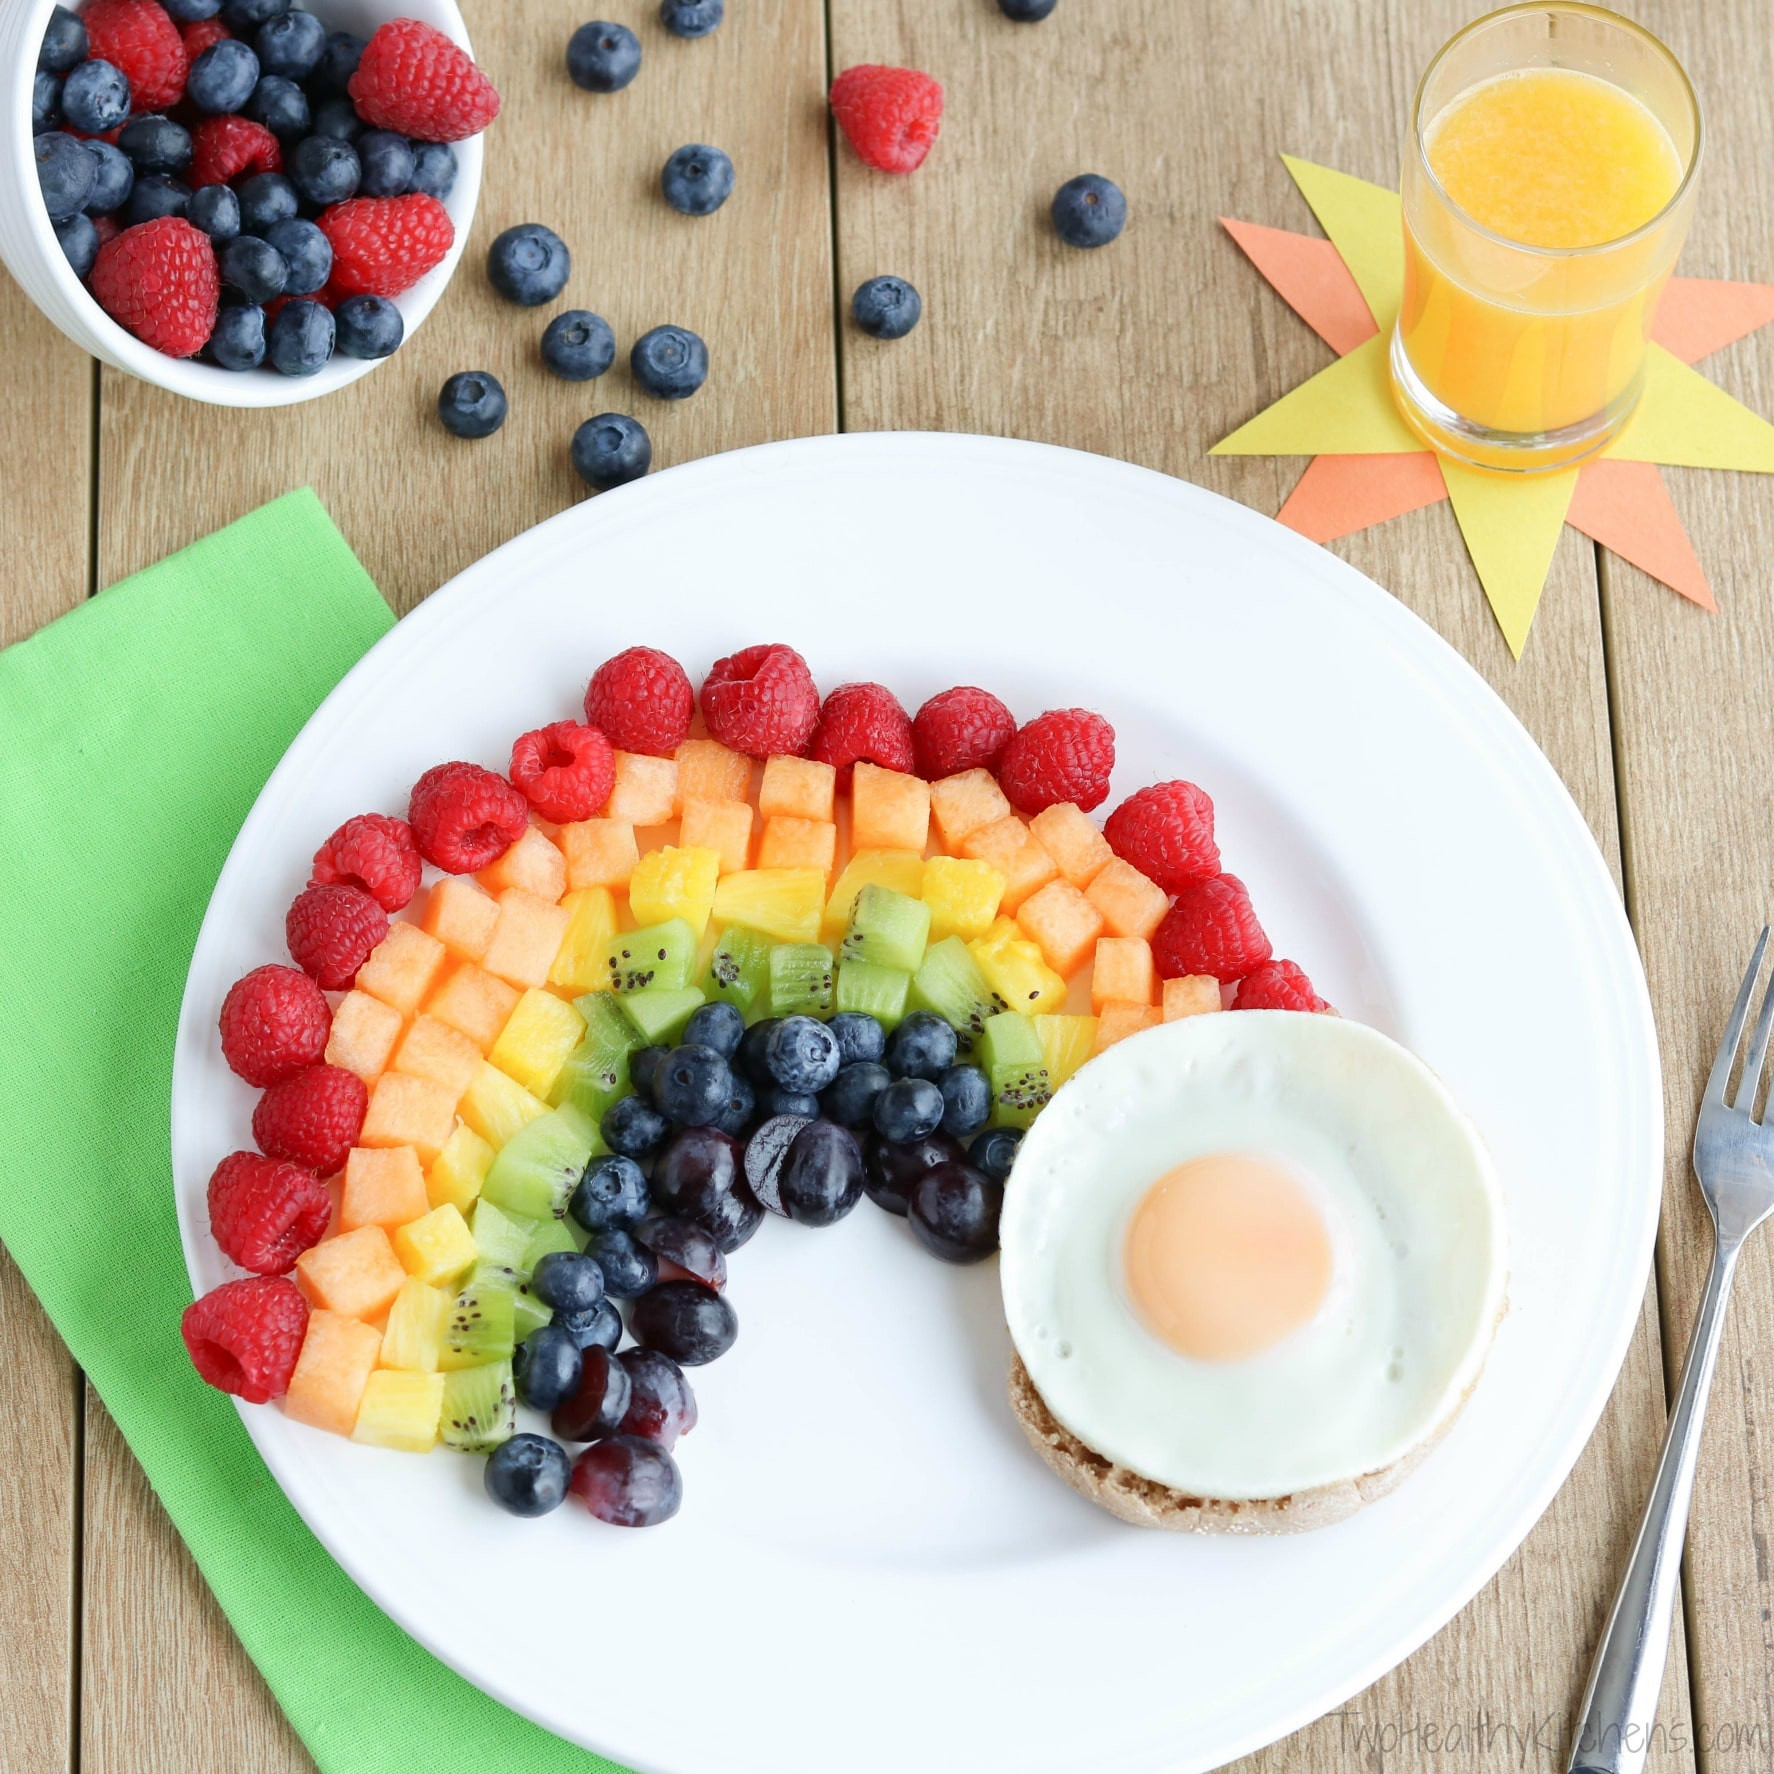 Healthy Breakfast For Kids  Fruit Rainbow with a Pot of Gold Fun Breakfast Idea for